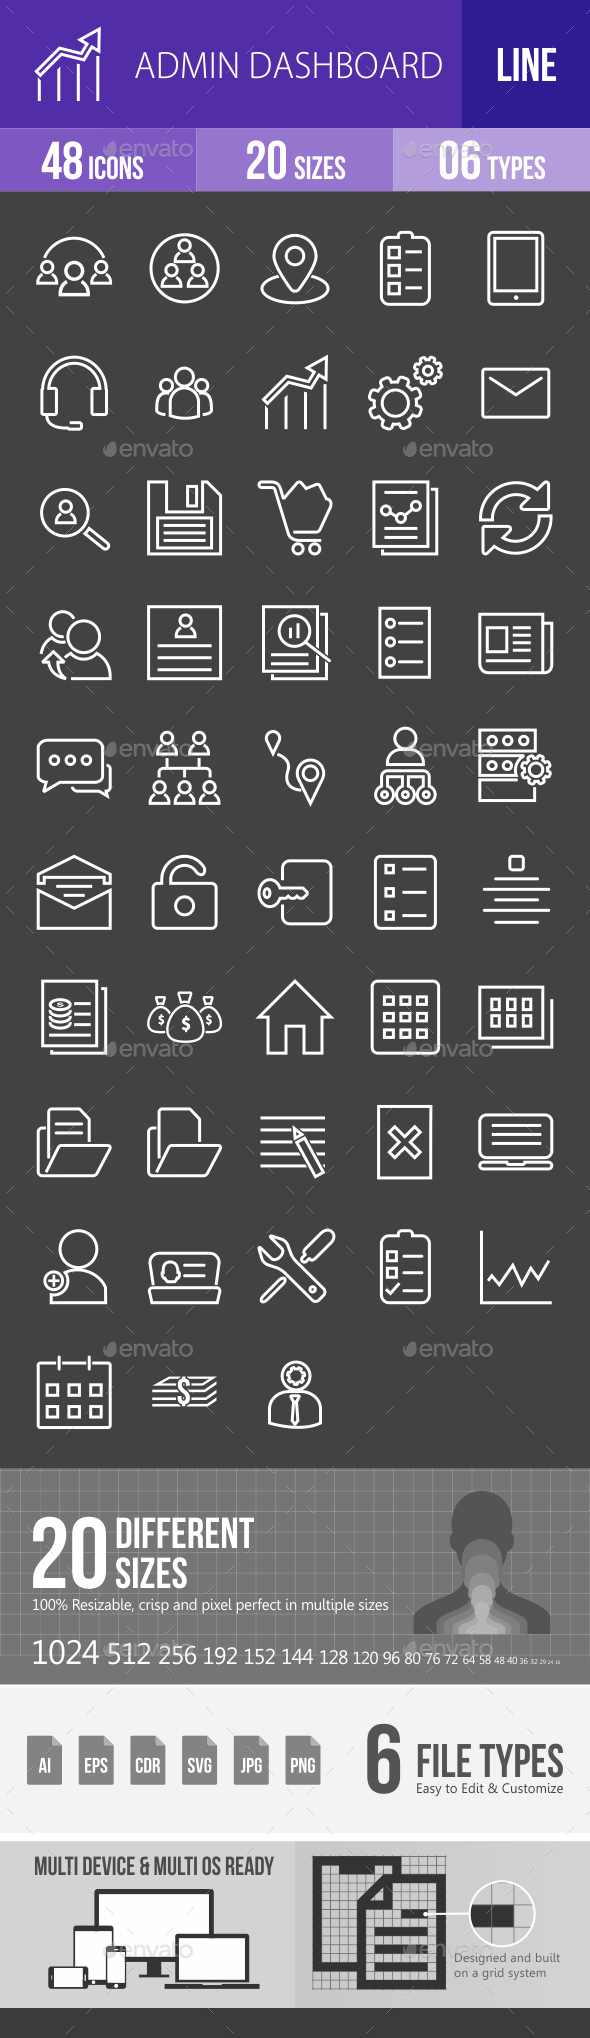 Admin Dashboard Line Inverted Icons - Icons